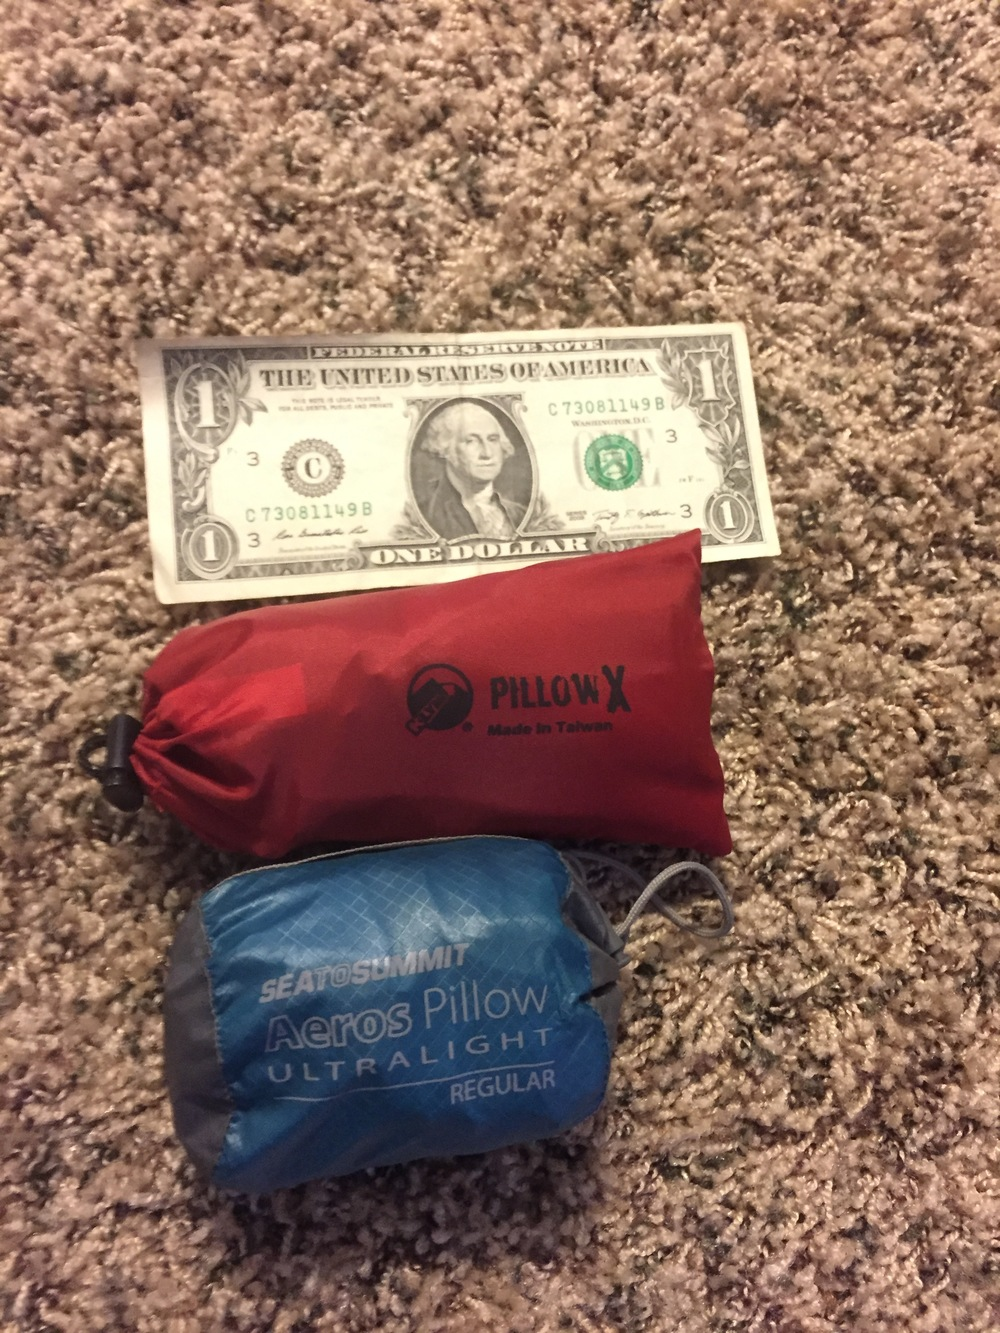 A dollar bill for scale of the size of the pillows in the stuff sacks - both pillows come with them.